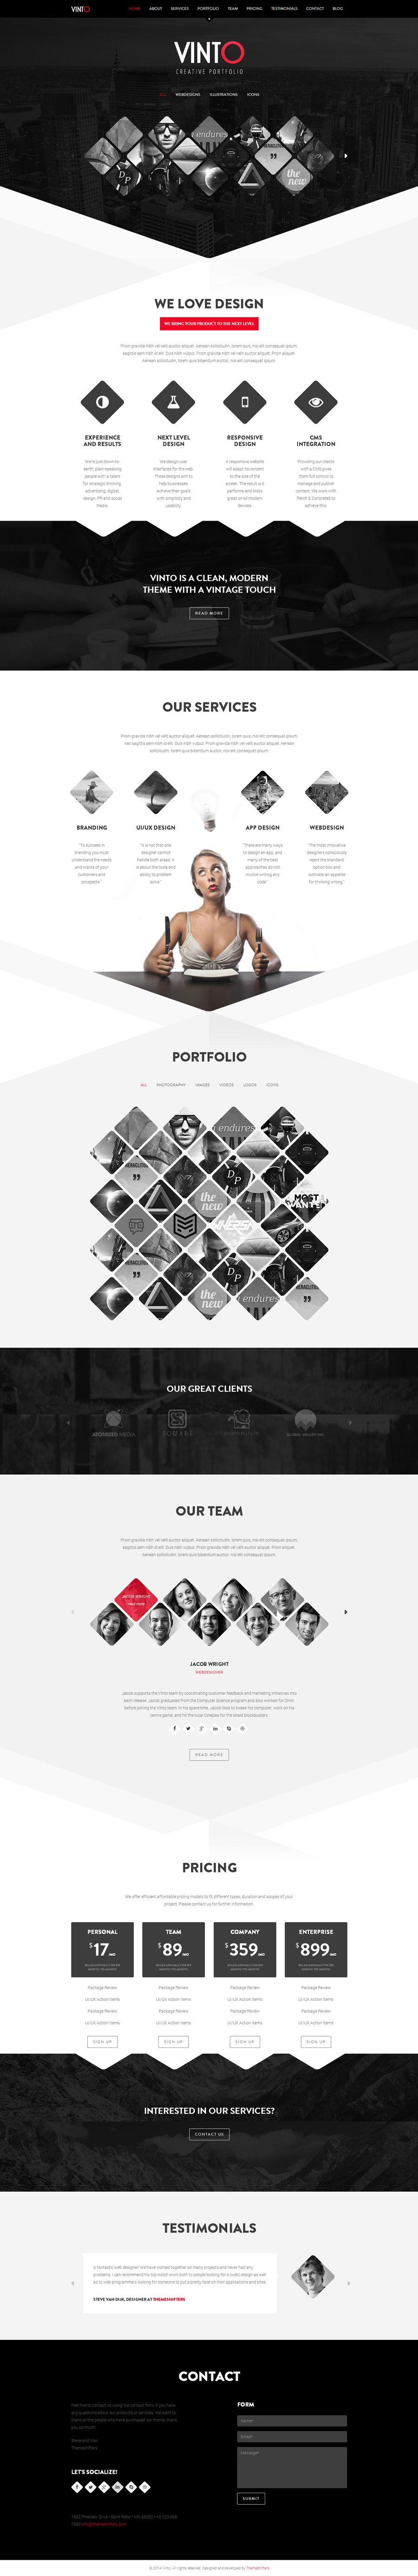 Pinterestfra webdesign contrast shape creative black